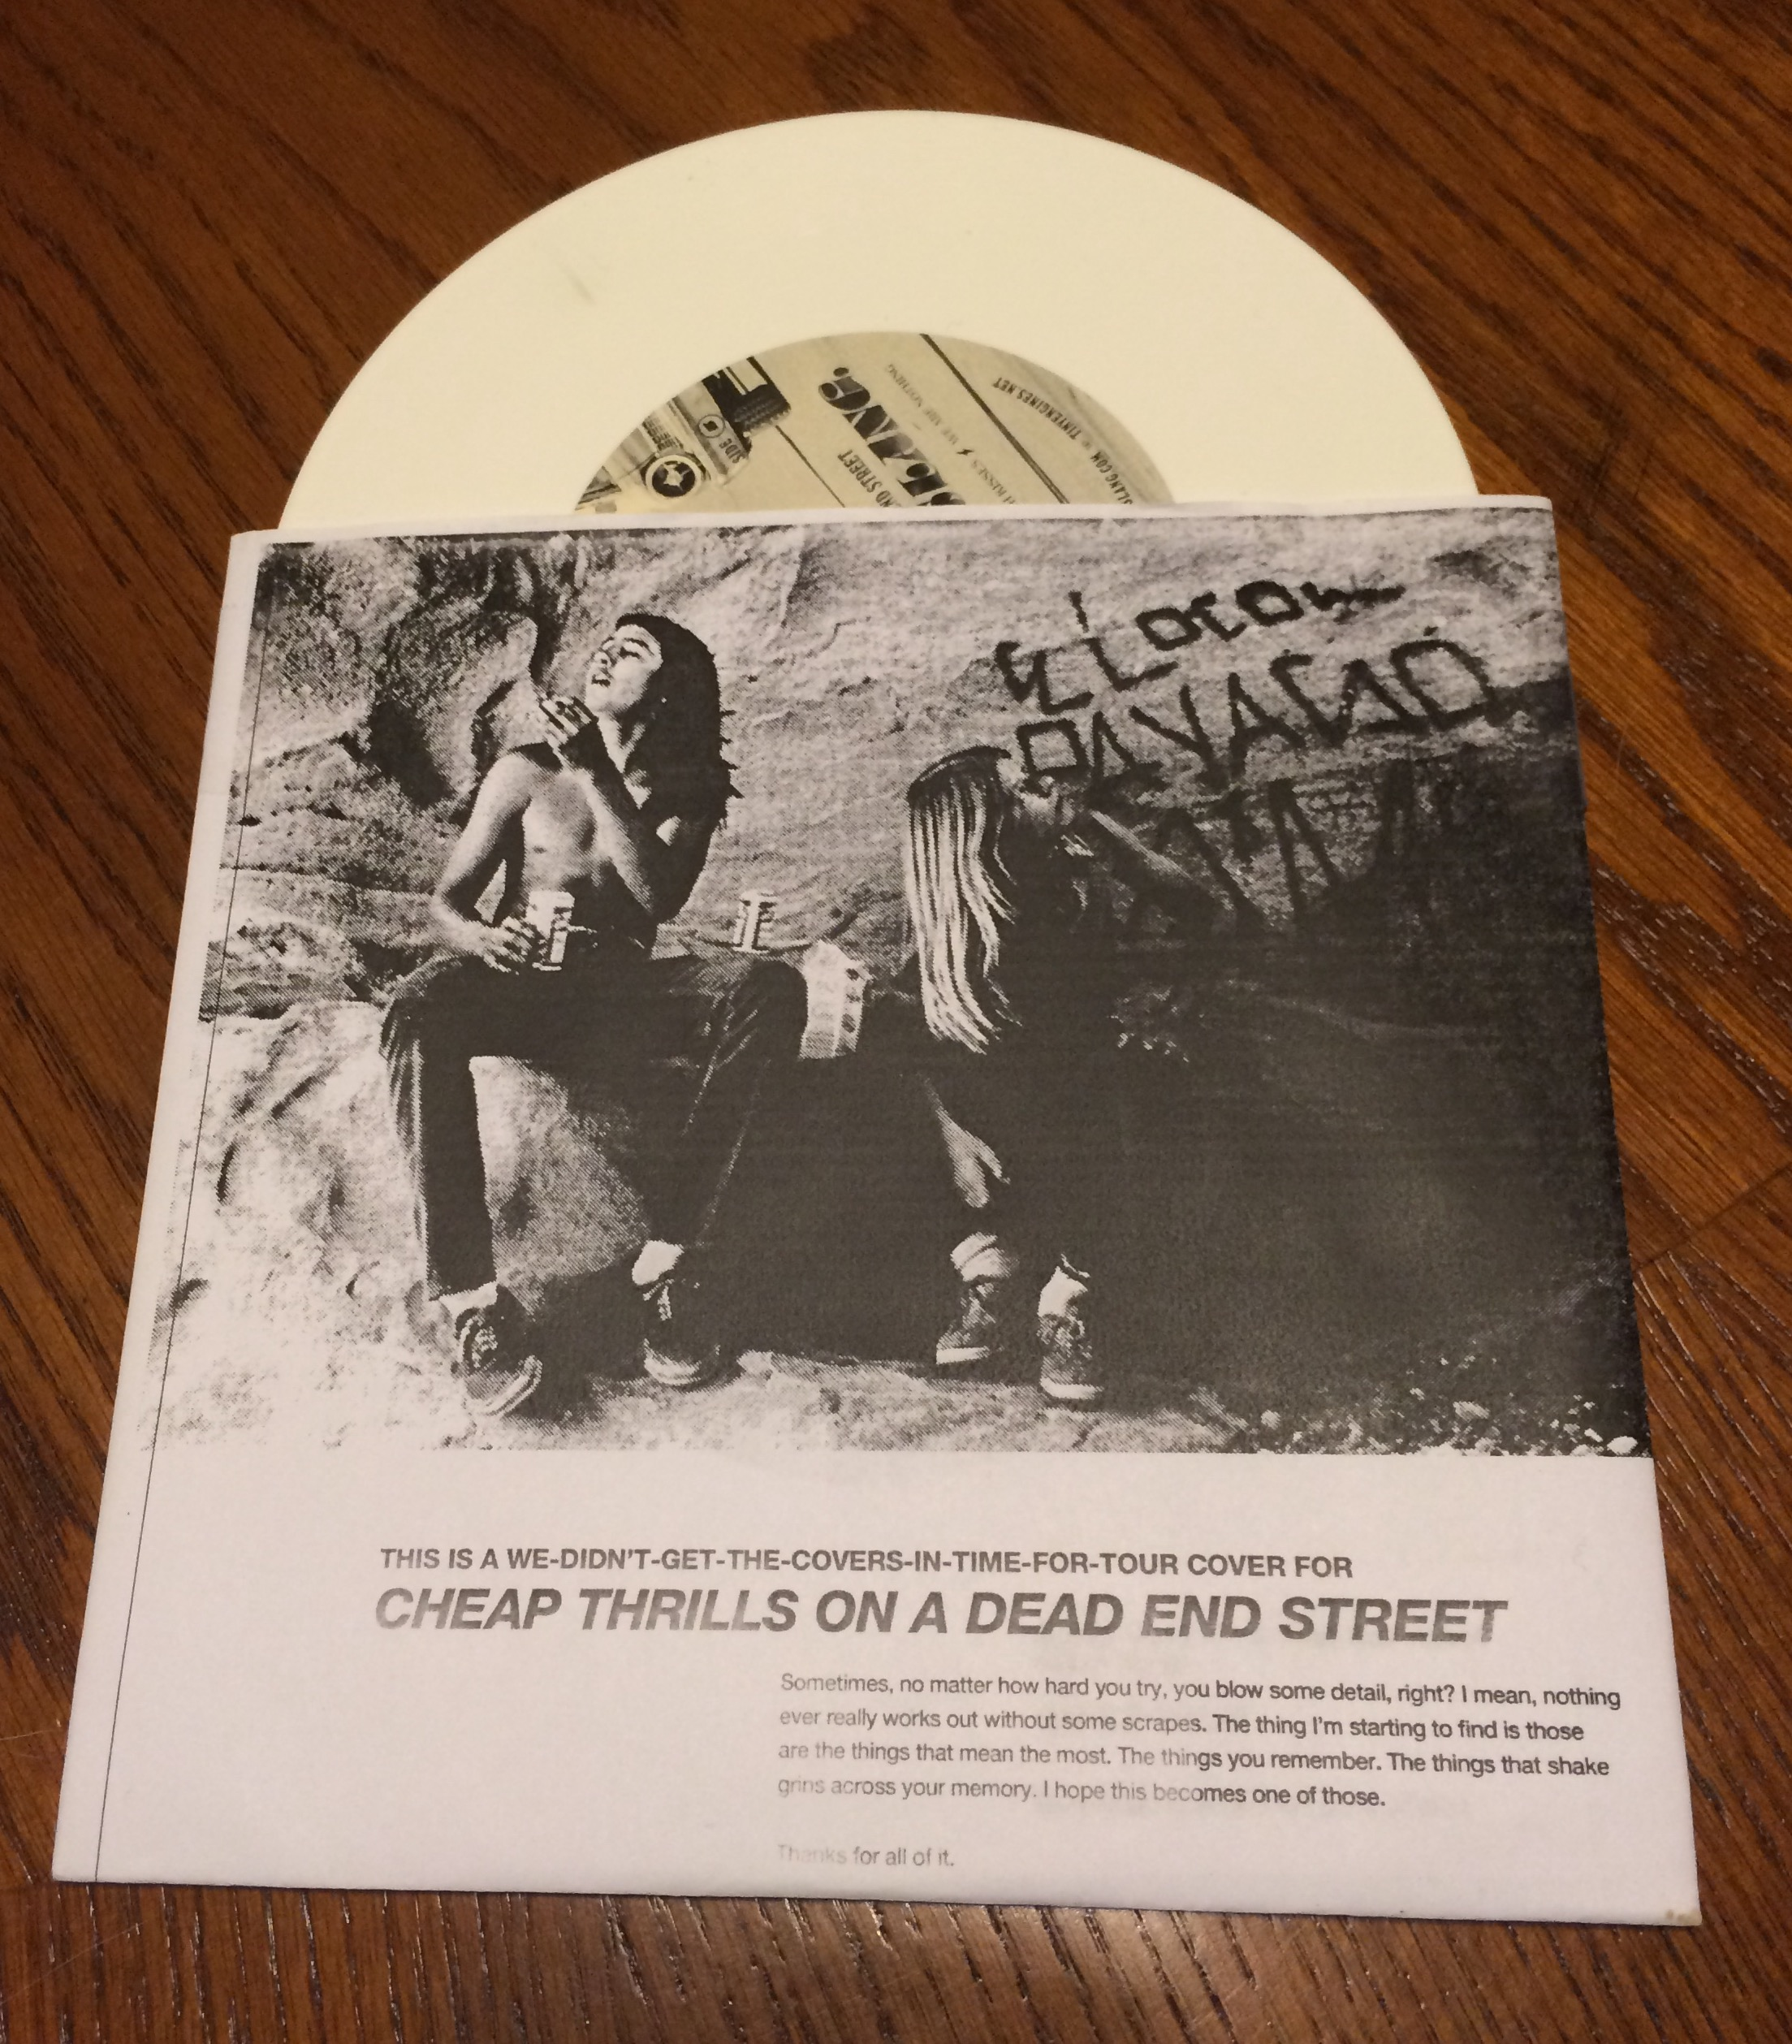 Footfall: Beach Slang Cheap Thrills on A Dead End Street (This-Is-A-We-Didn't-Get-The-Covers-In-Time-For-Tour edition)